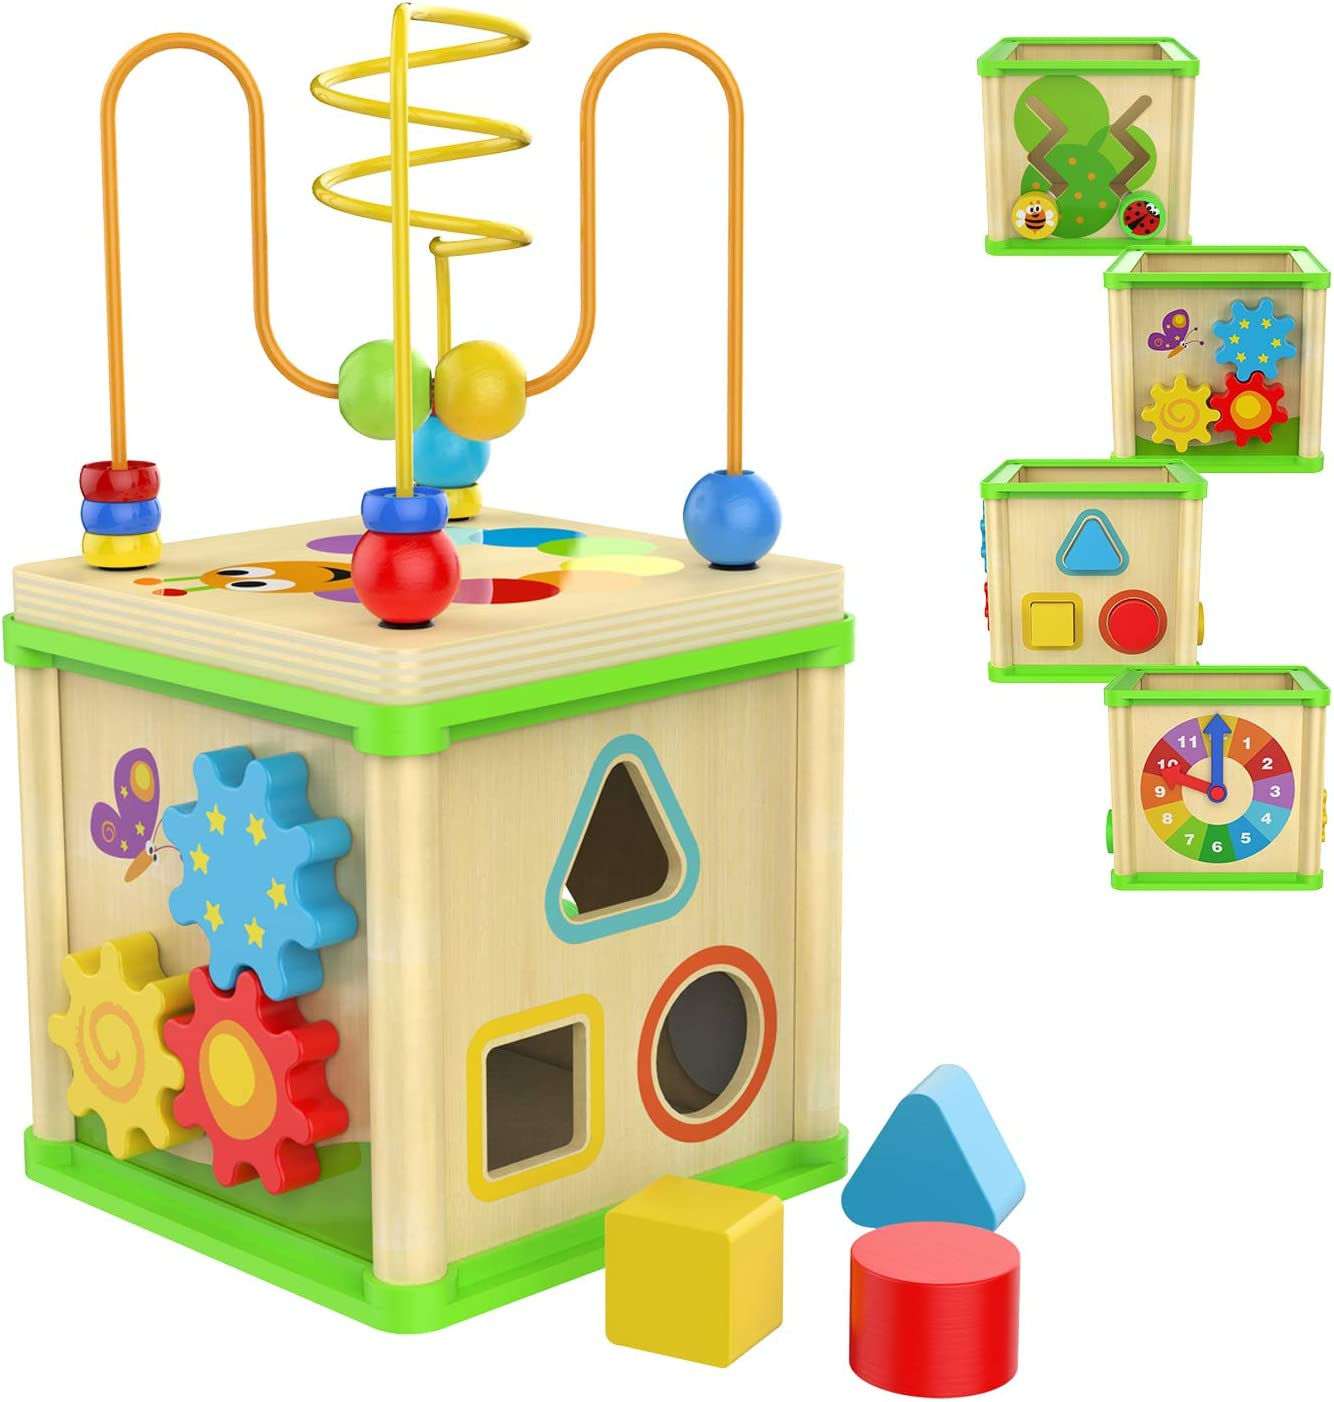 TOP BRIGHT Wooden Activity Cube Toys for 1 2 Year Old Girl Boy, One Year Old First Birthday Gift Ideas, Wooden Toy with Bead Maze Shape Sorter